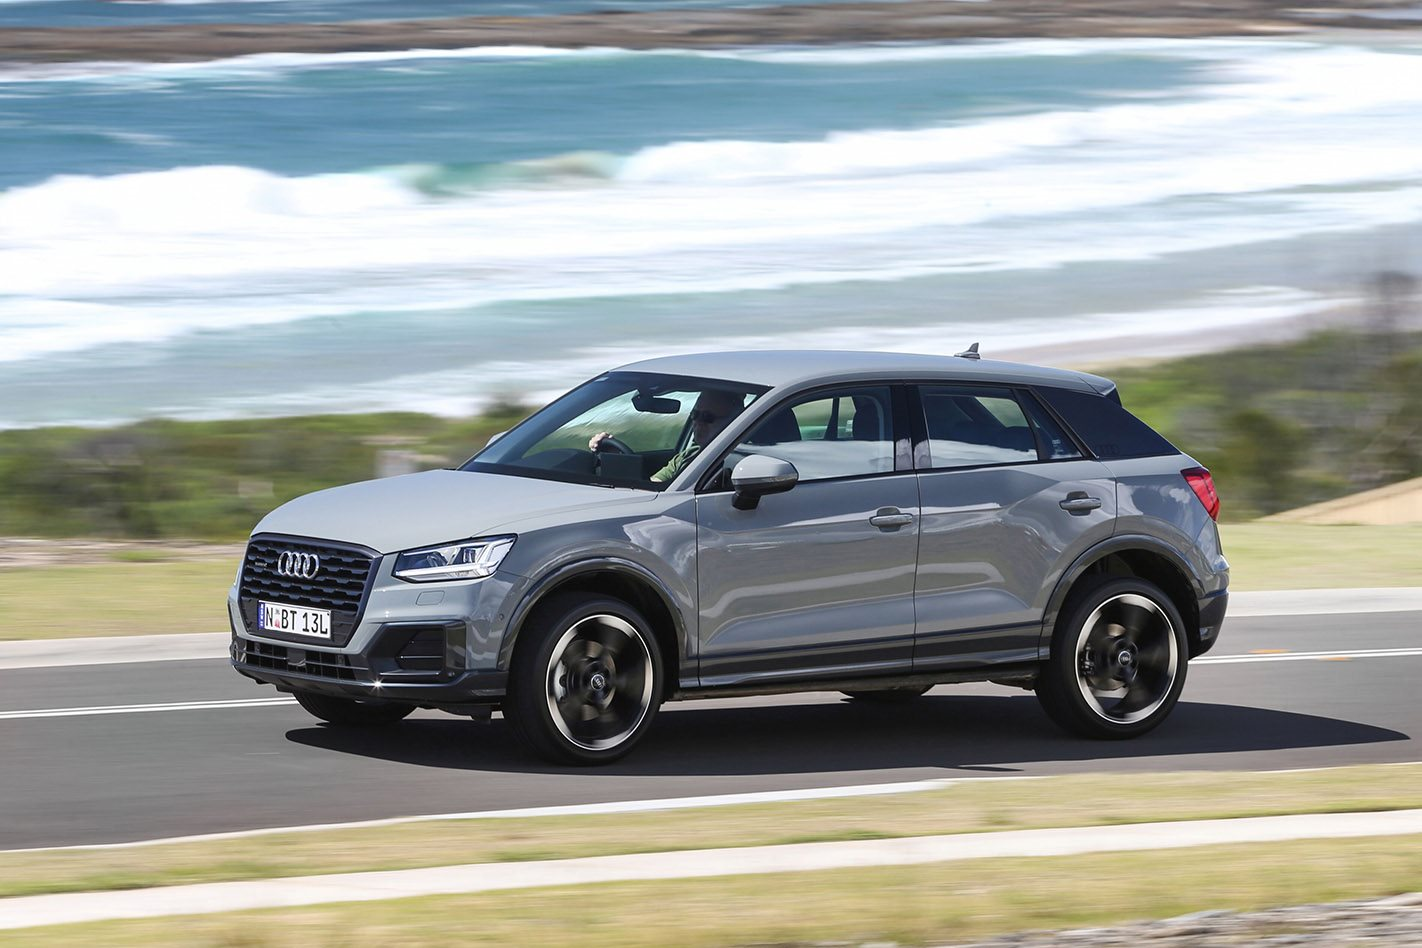 s audi small the power naias quattro concept awesome look hydrogen suv tron h makes verge